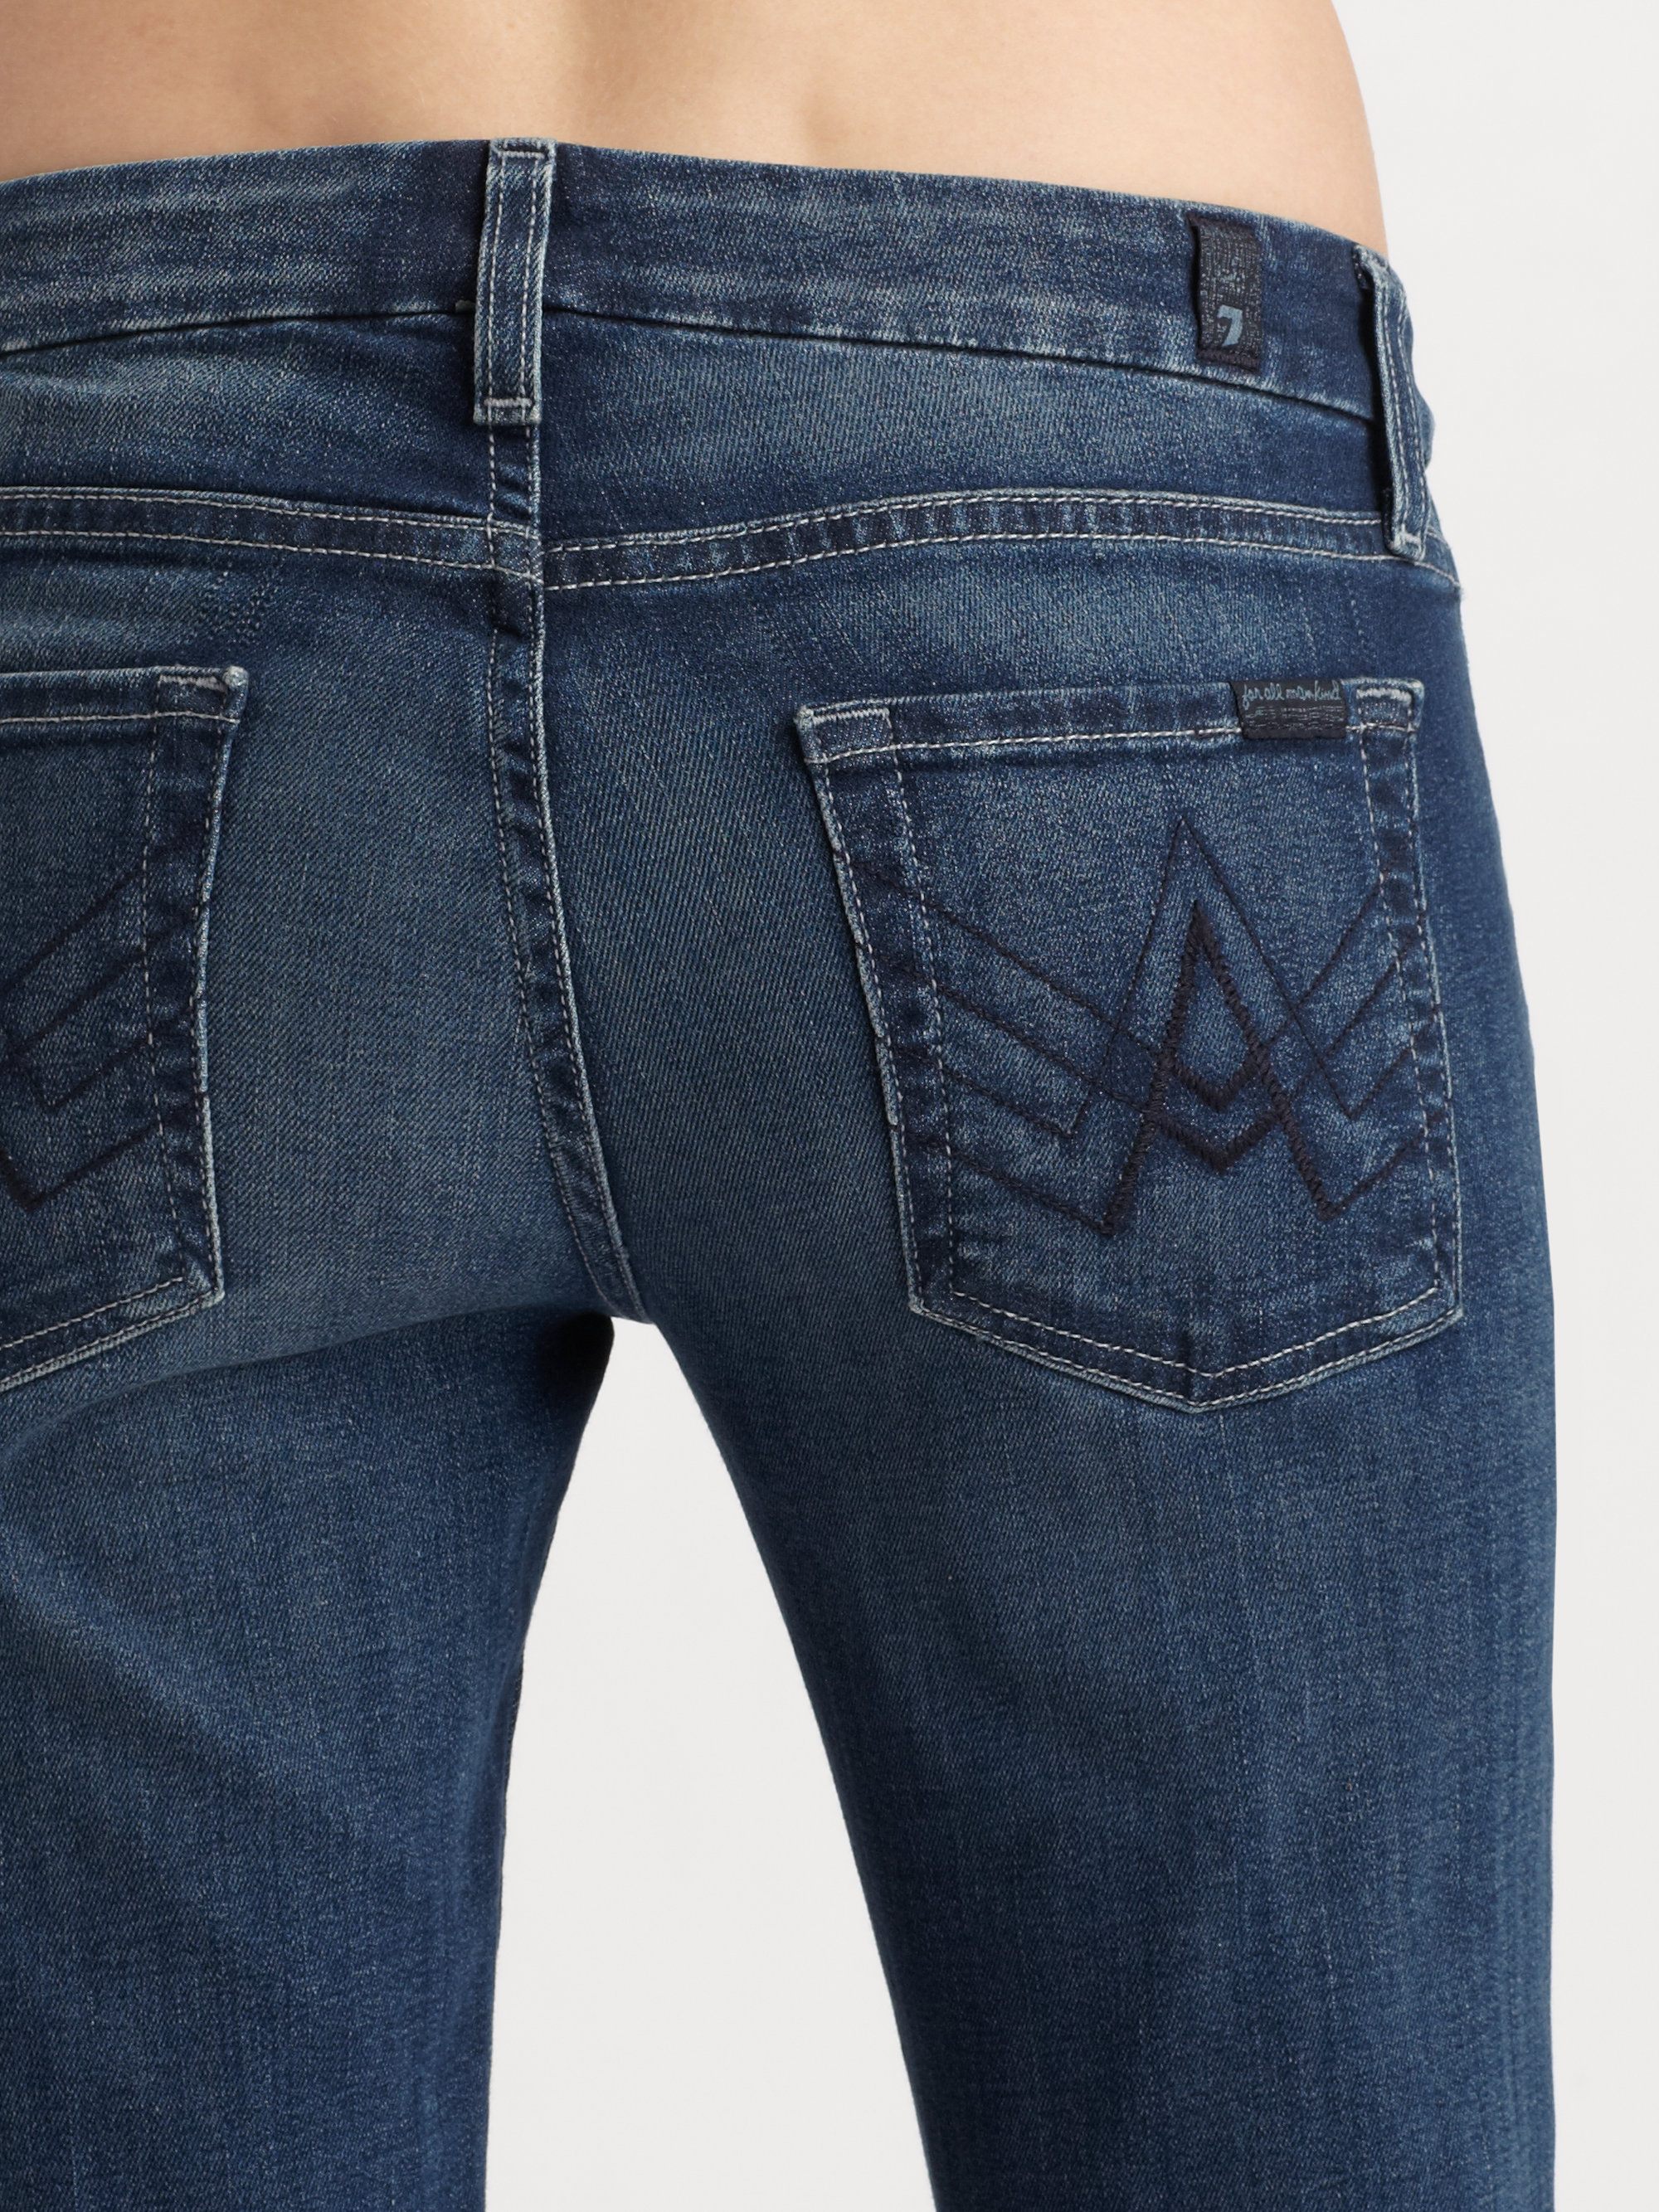 7 for all mankind A Pocket Jeans in Blue | Lyst